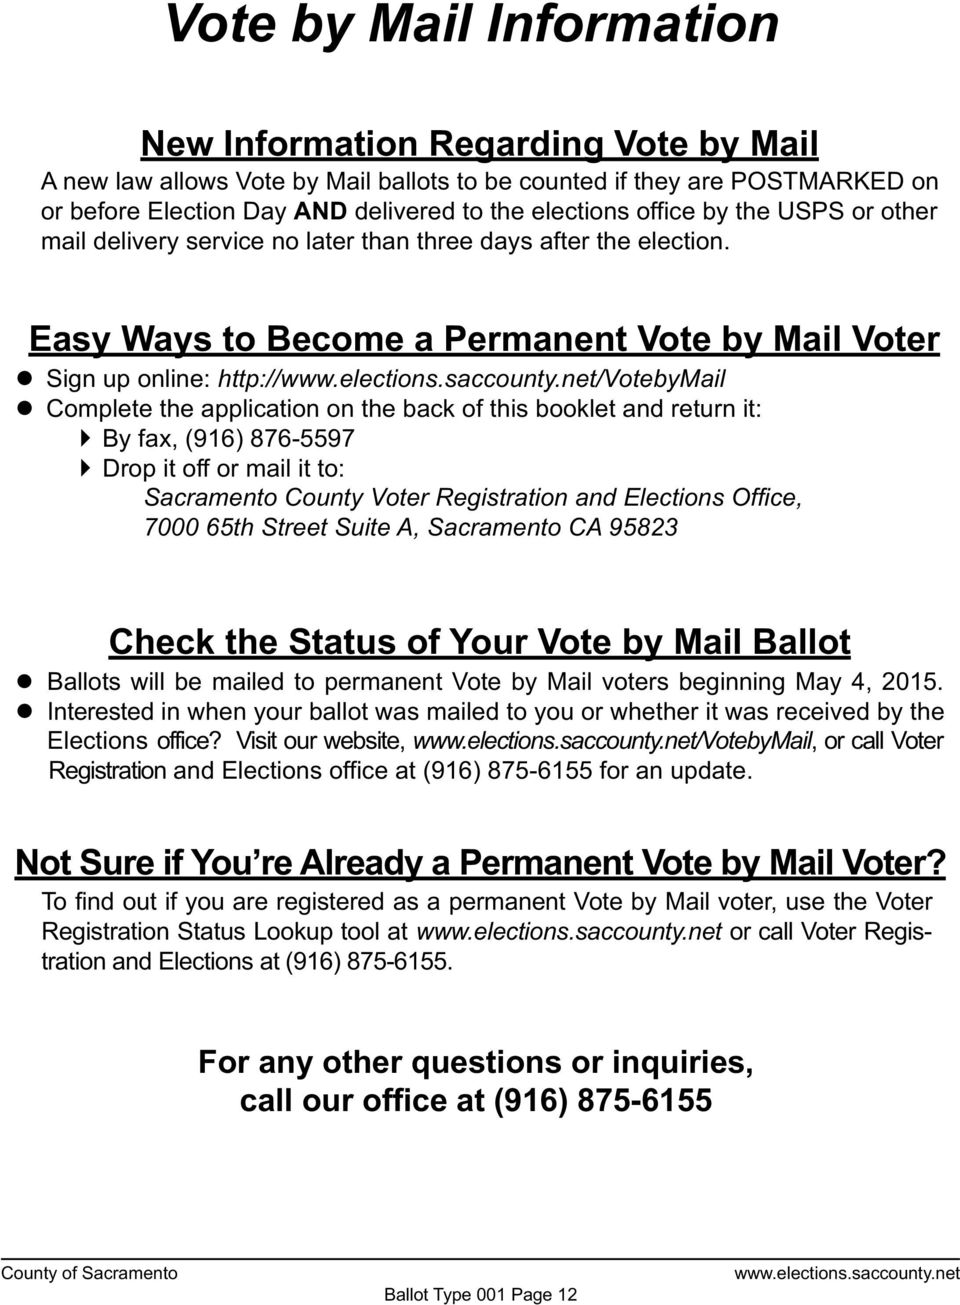 Easy Ways to Become a Permanent Vote by Mail Voter Sign up online: http:///votebymail Complete the application on the back of this booklet and return it: By fax, (916) 876-5597 Drop it off or mail it